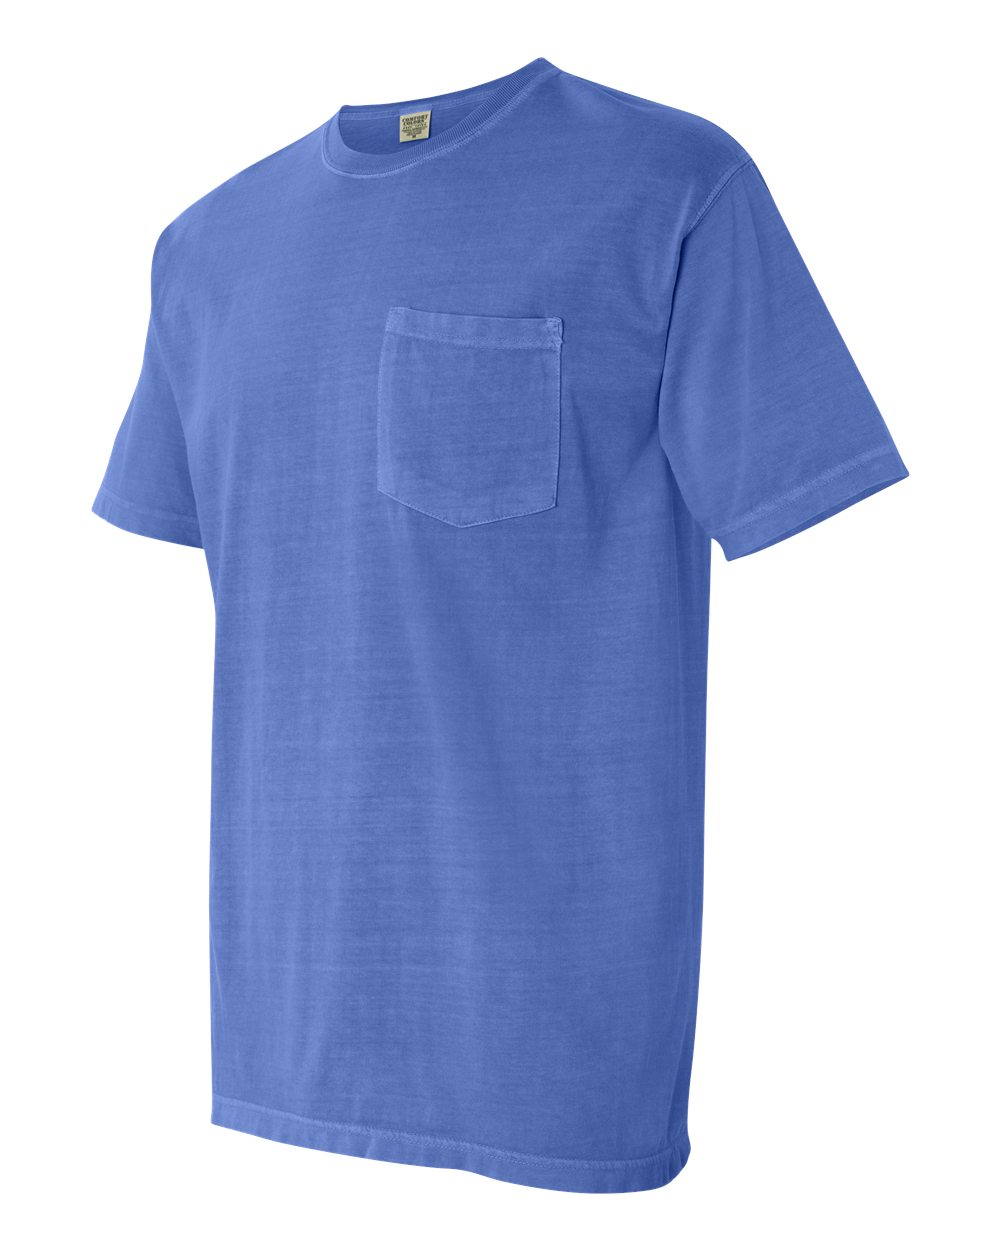 Comfort-Colors-Men-039-s-6-1-oz-Garment-Dyed-Pocket-T-Shirt-6030CC-S-3XL thumbnail 39